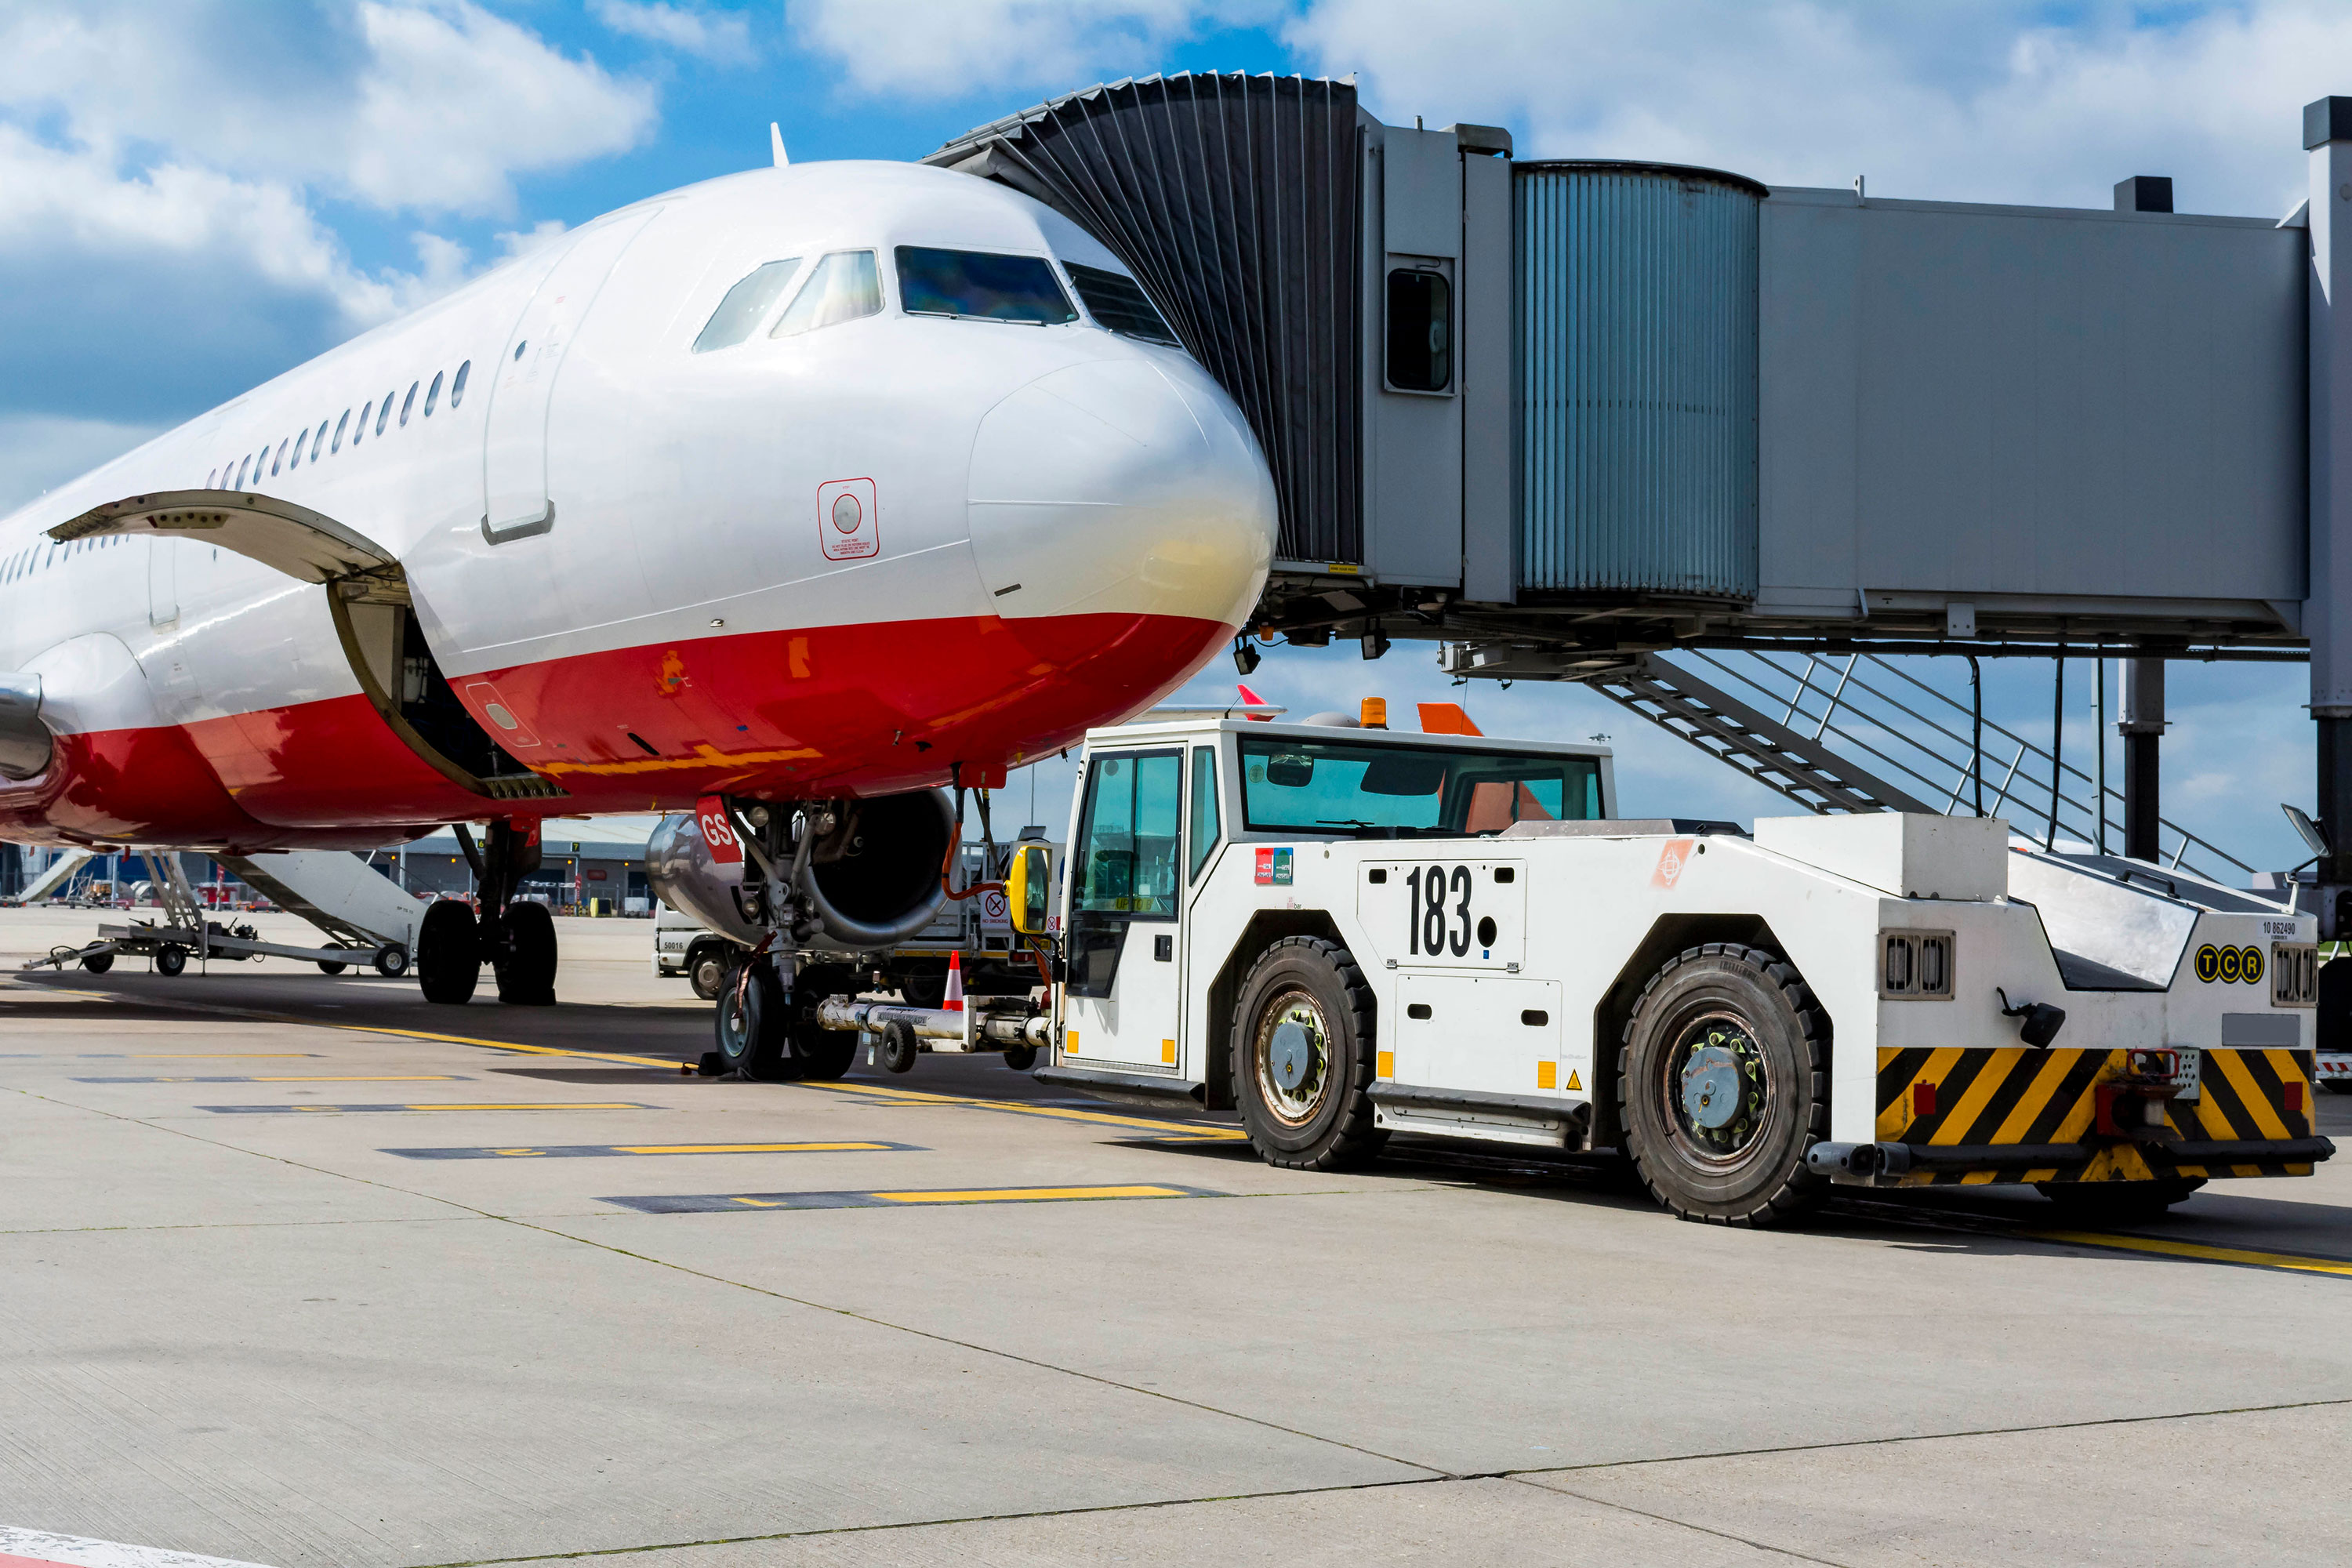 Recent research by RTITB Airside has found that airlines, airports and ground handlers are failing to take the right action when it comes to solving profitability and talent recruitment and retention challenges.